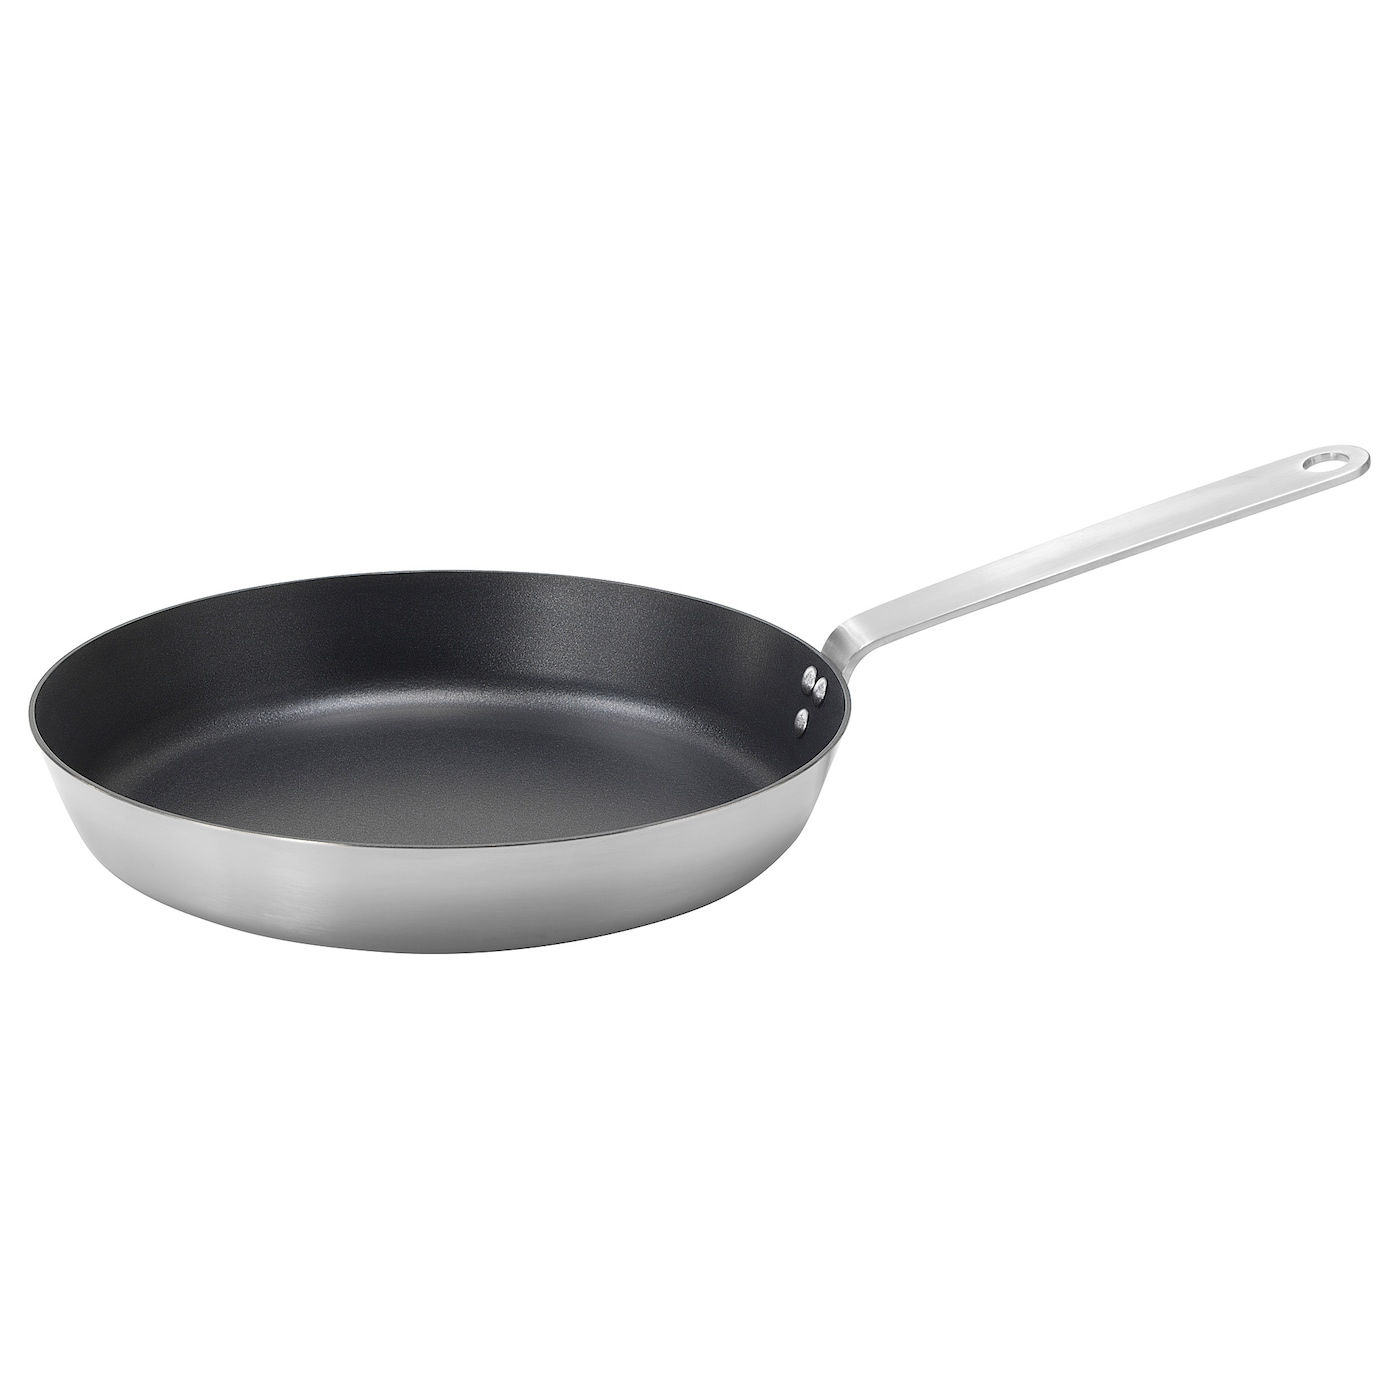 IKEA IKEA 365+ frying pan 5 year guarantee. Read about the terms in the guarantee brochure.